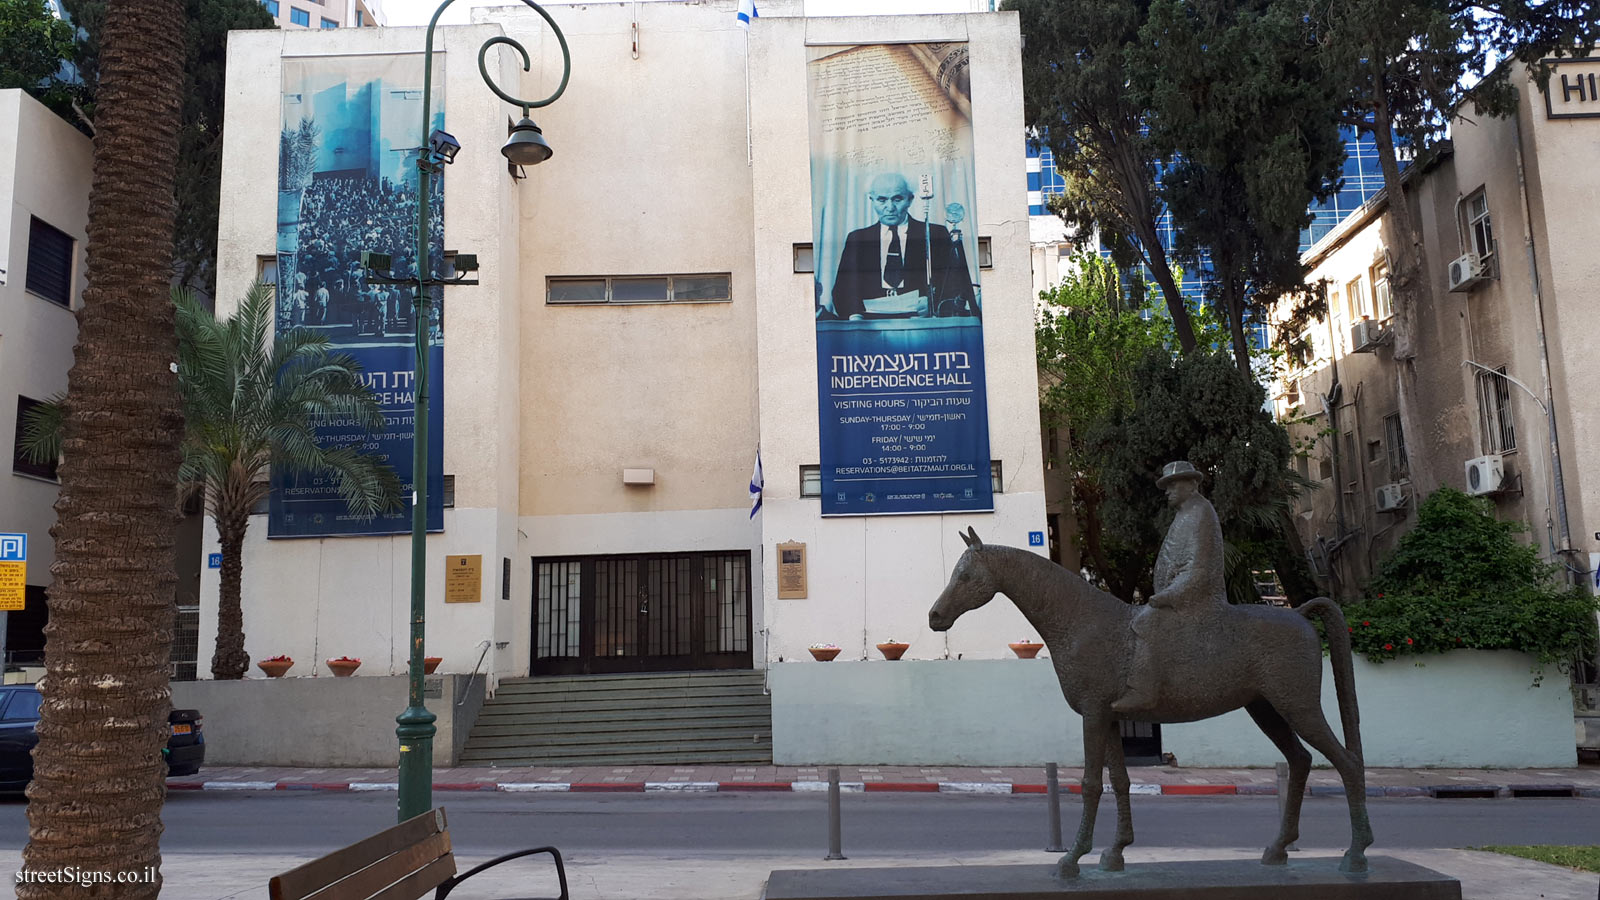 Tel Aviv - Independence Trail - Independence Hall and the Statue of Meir Dizengoff